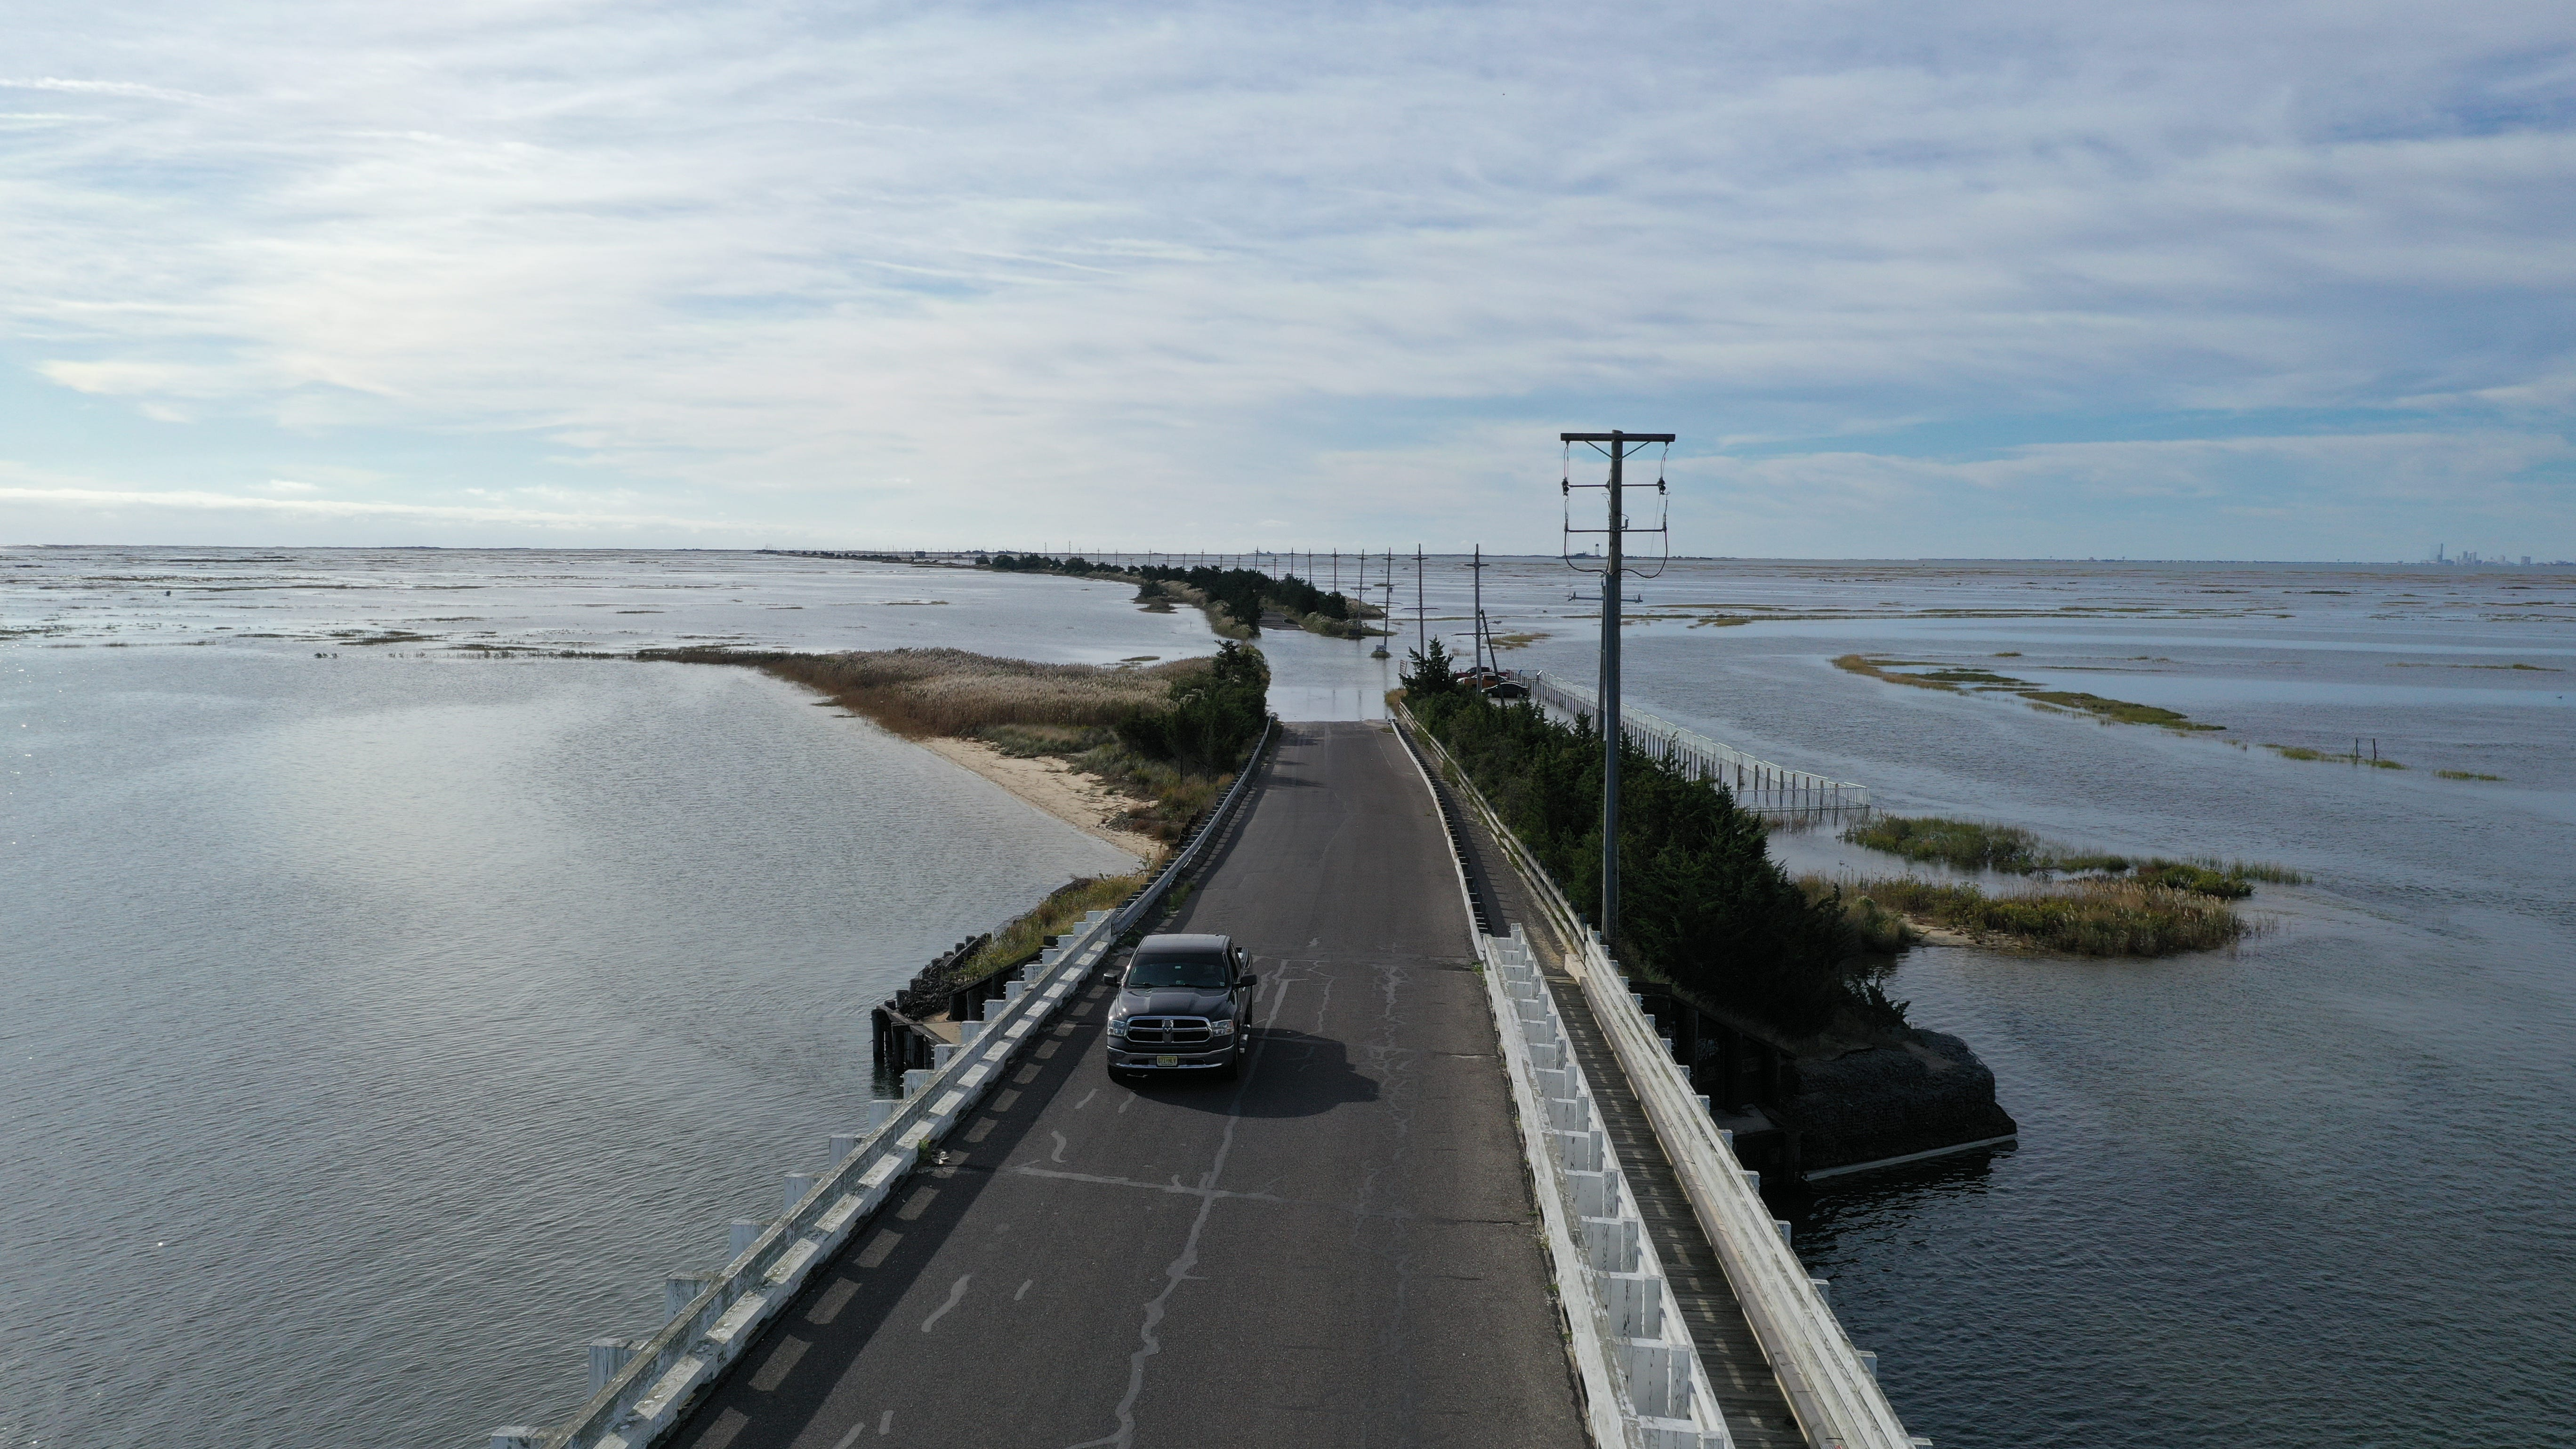 A fall high tide floods a coastal road in Southeastern New Jersey during an October 2019 king tide.  [Photos by Life on the Edge Drones, provided by Jacques Cousteau National Estuarine Research Reserve]